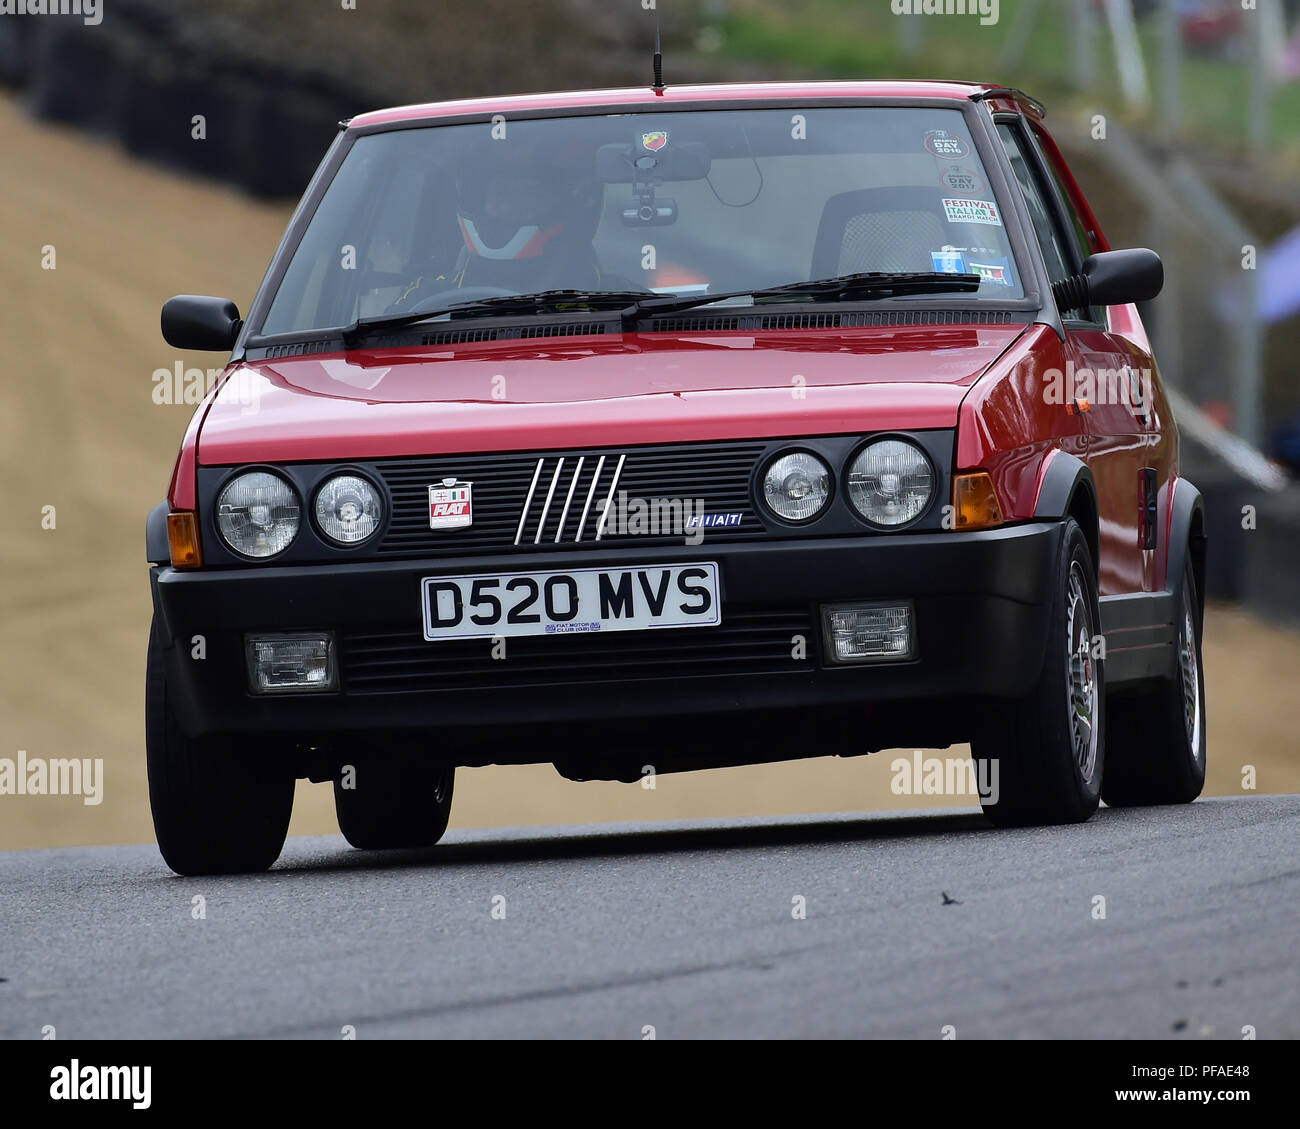 FIAT Strada Abarth, Historic Abarth Demonstration, Special Italian Car demo, Festival Italia, Brands Hatch, Kent, England, August 19th, 2018. - Stock Image